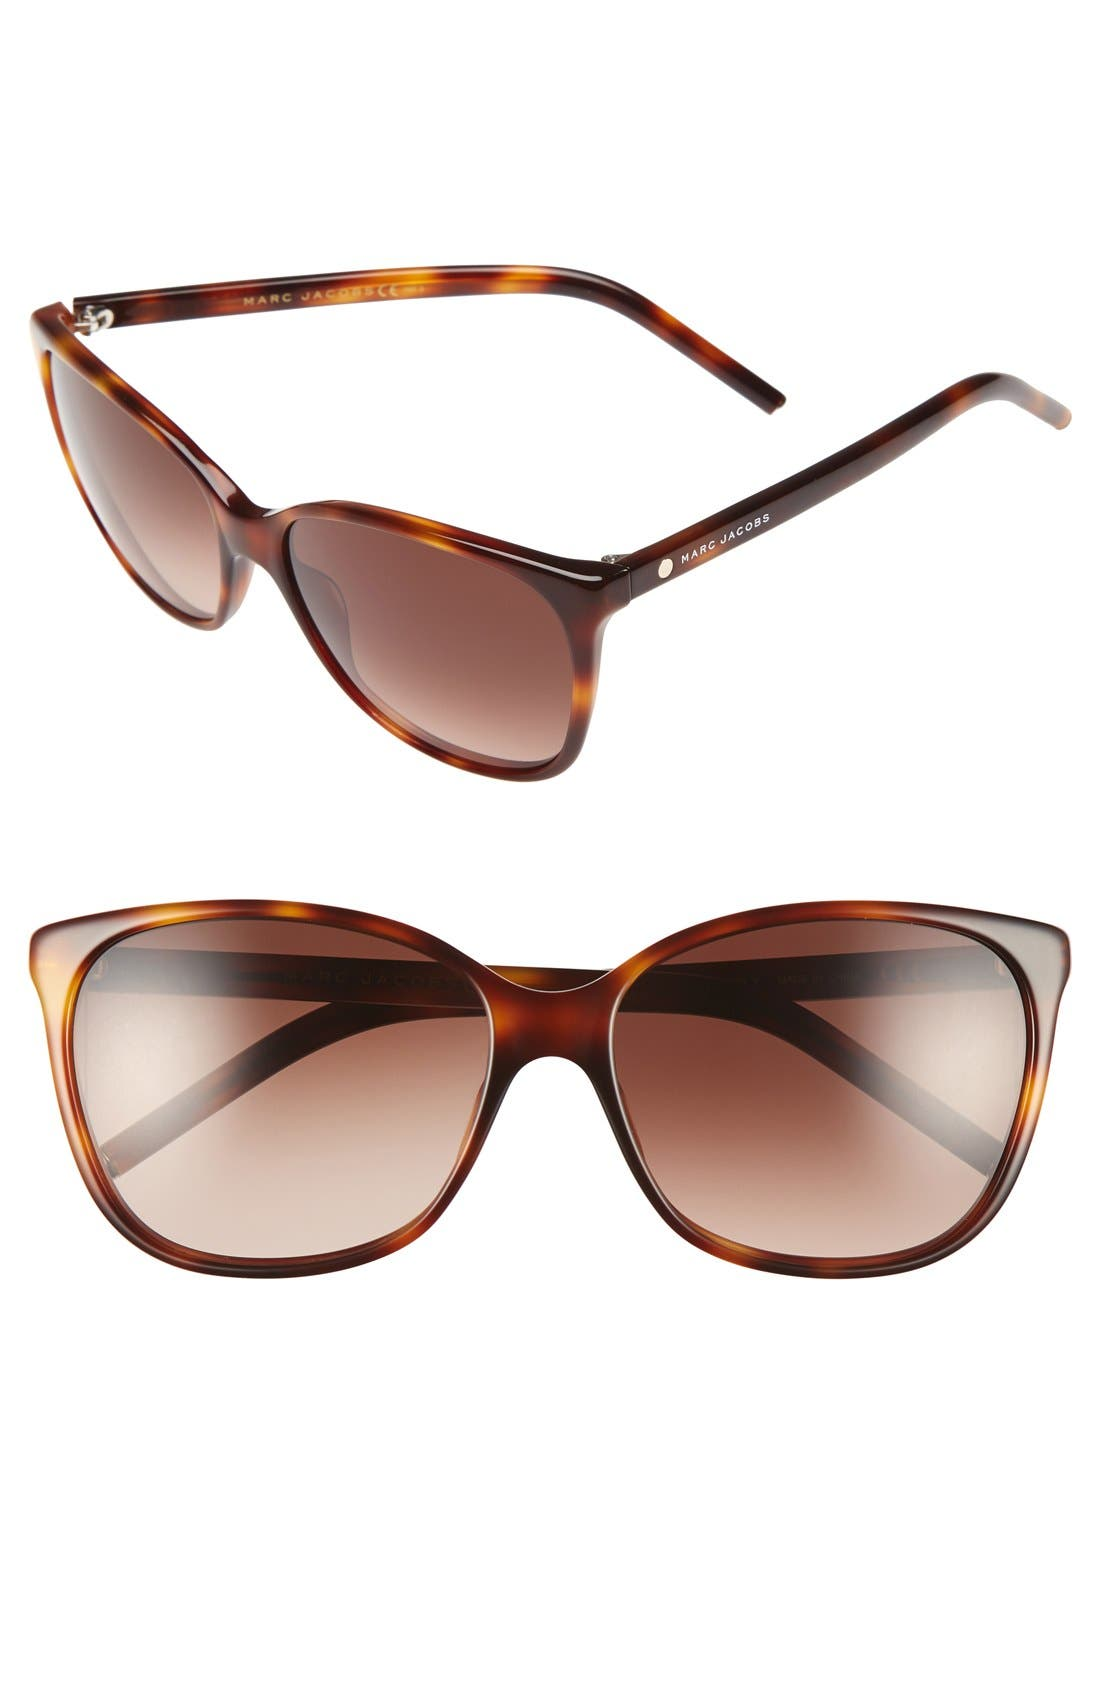 57mm Oversized Sunglasses,                             Main thumbnail 1, color,                             210